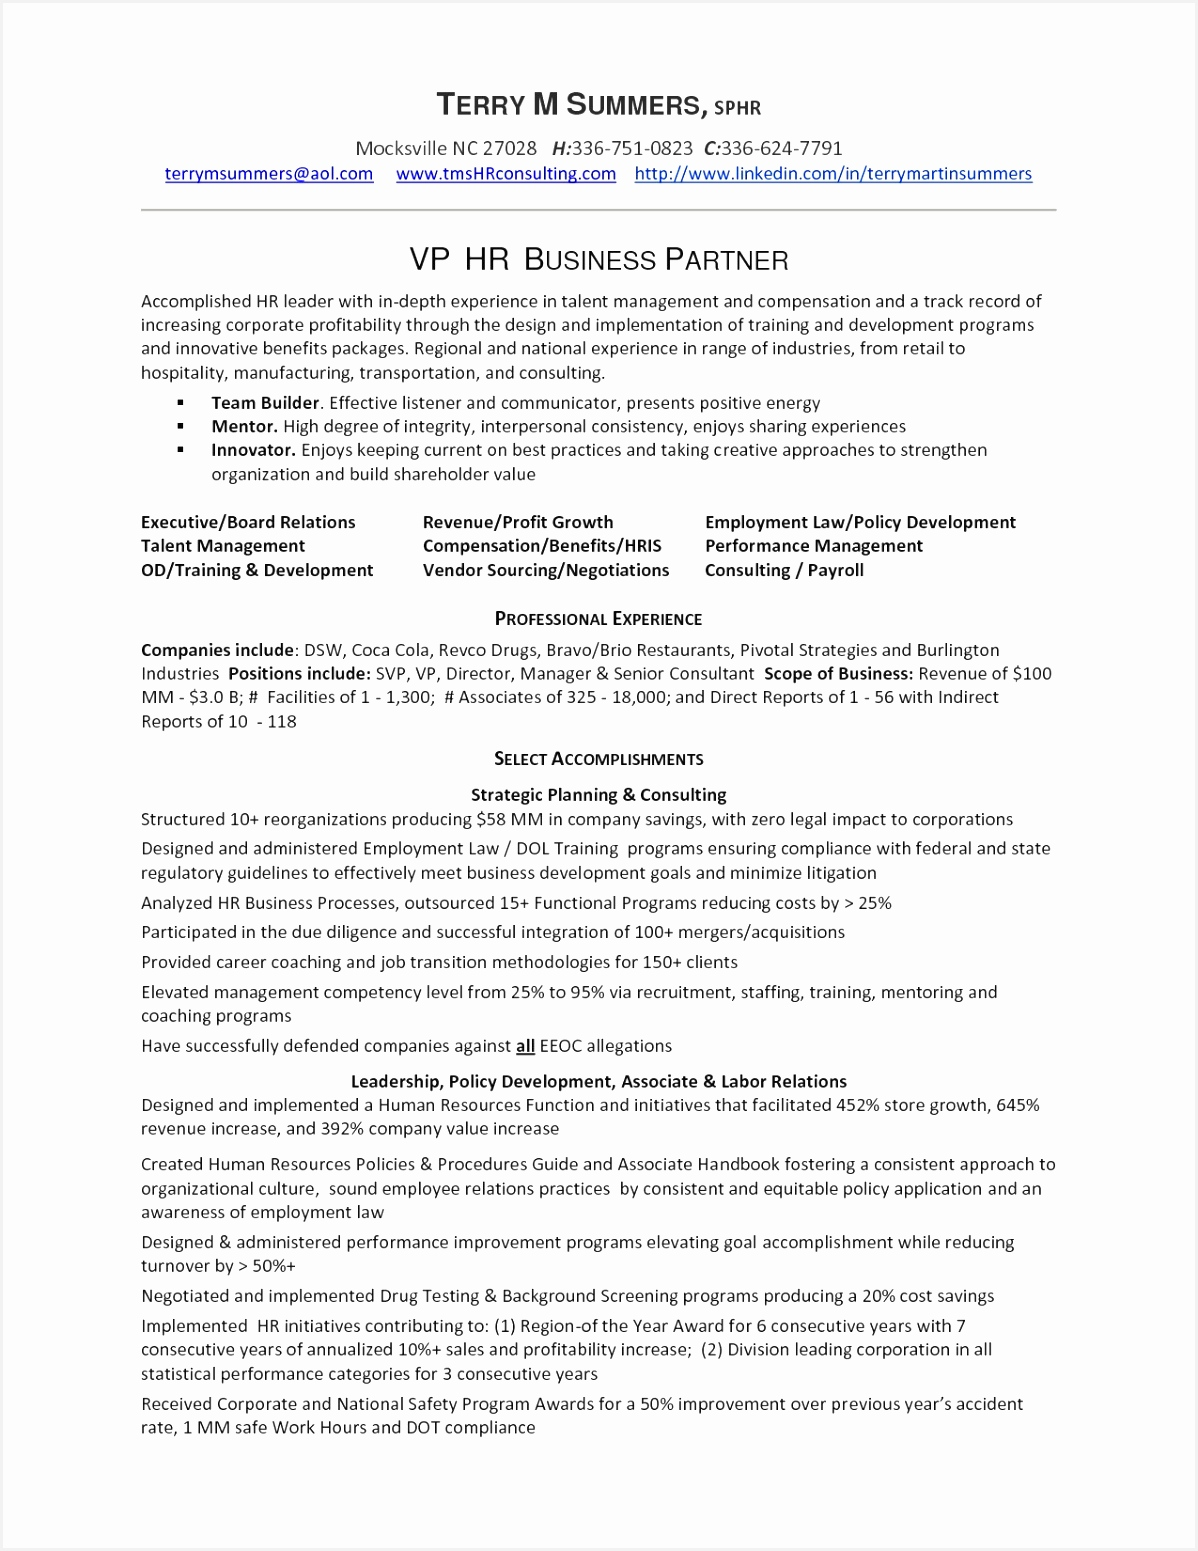 Resume Samples Retail Sales Associate Valid Resume Manager Resume Template Example Templates Associate Elegant 15511198tdirg